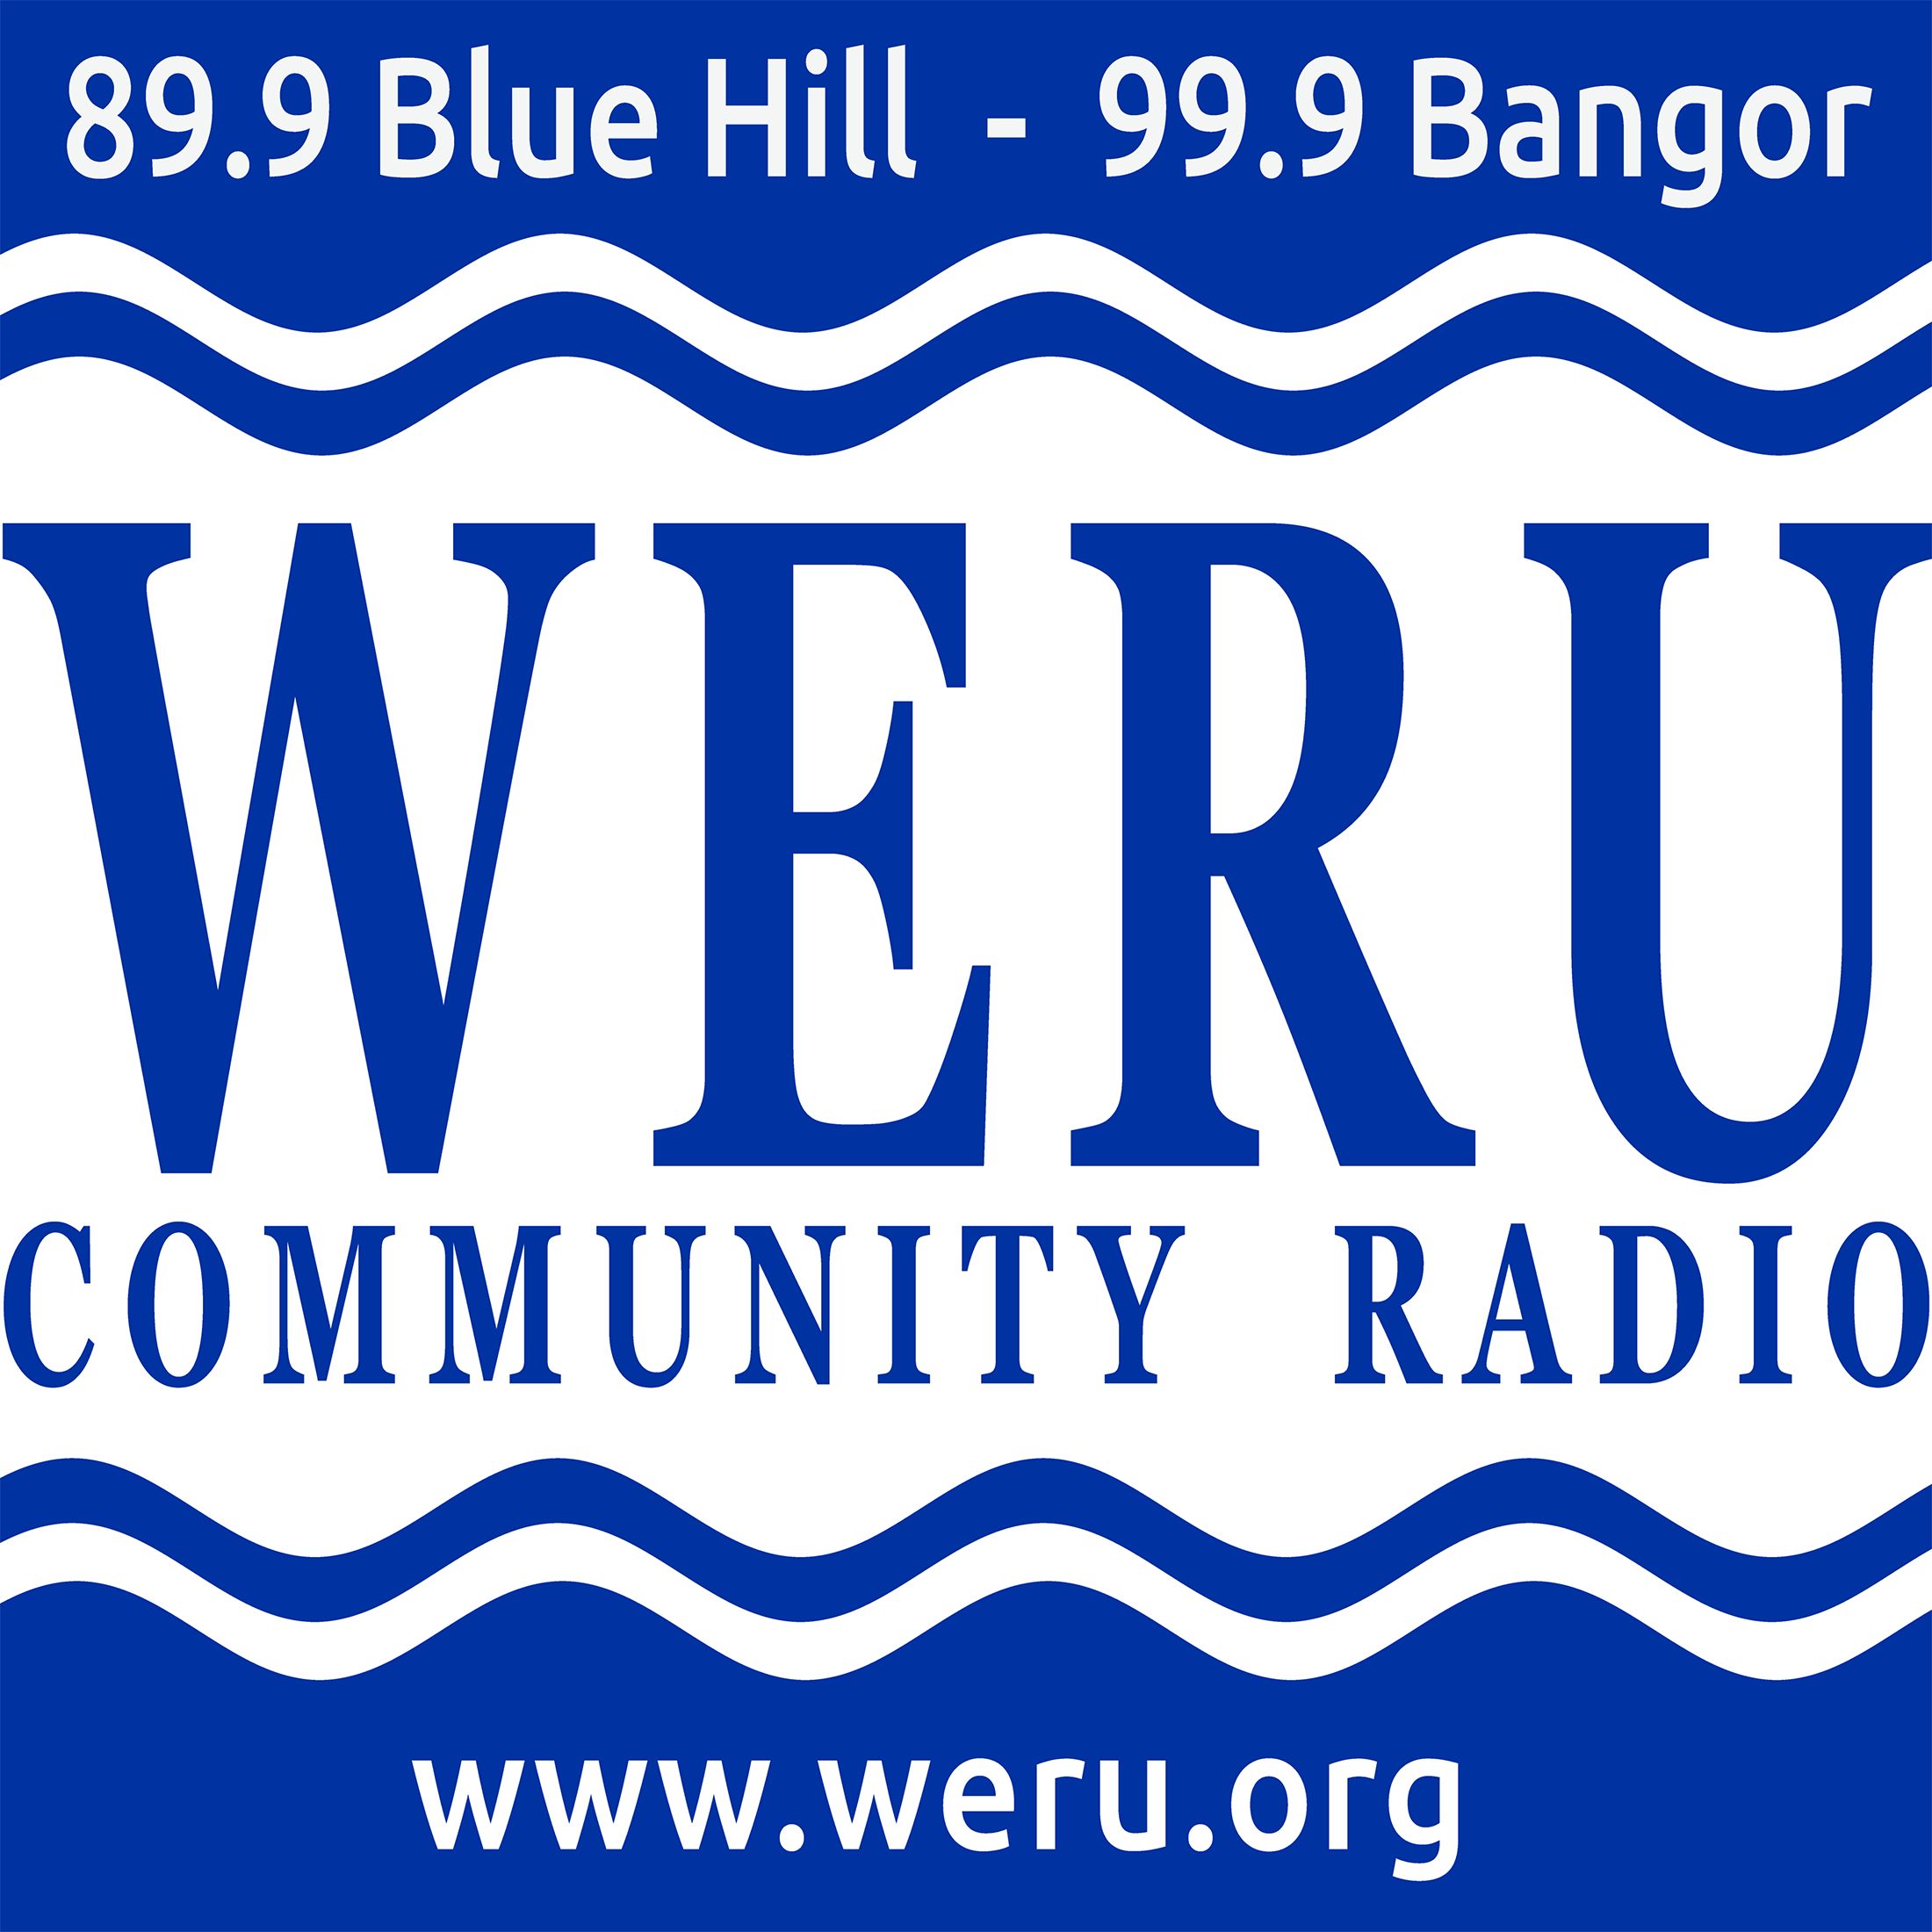 Common Ground Radio – WERU 89.9 FM Blue Hill, Maine Local News and Public Affairs Archives